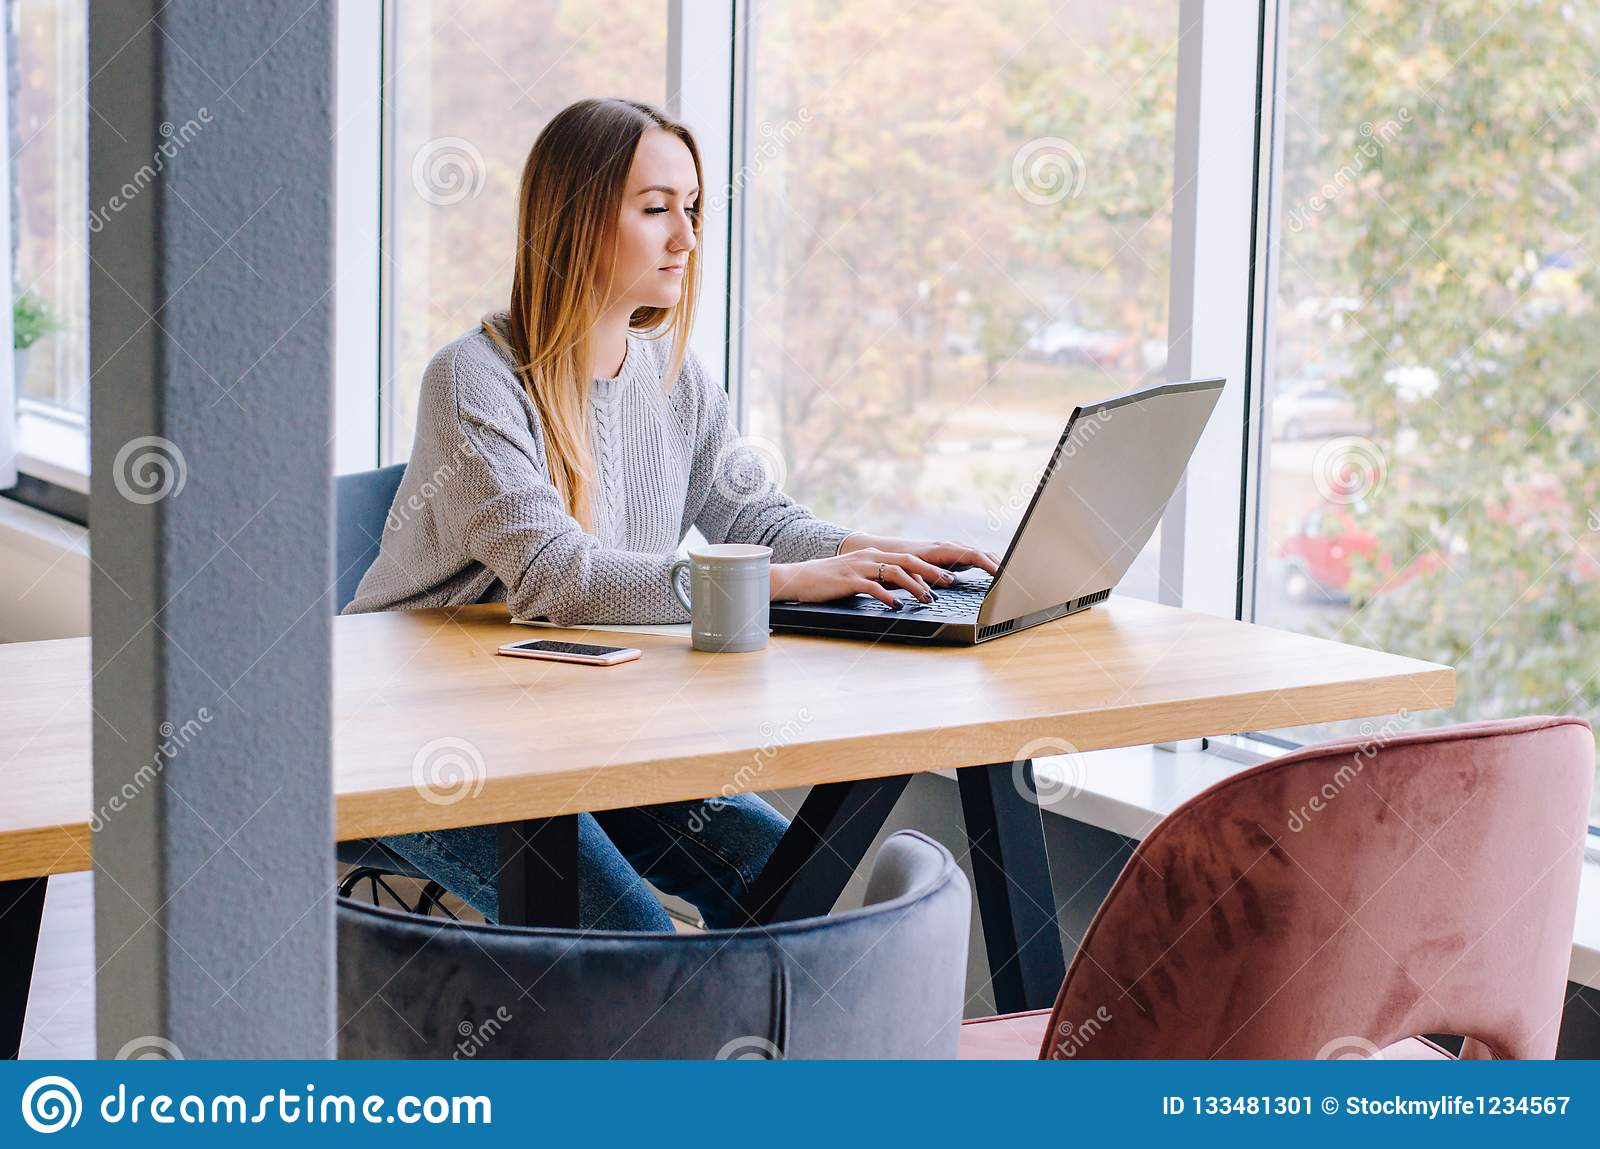 The girl sits working at the computer